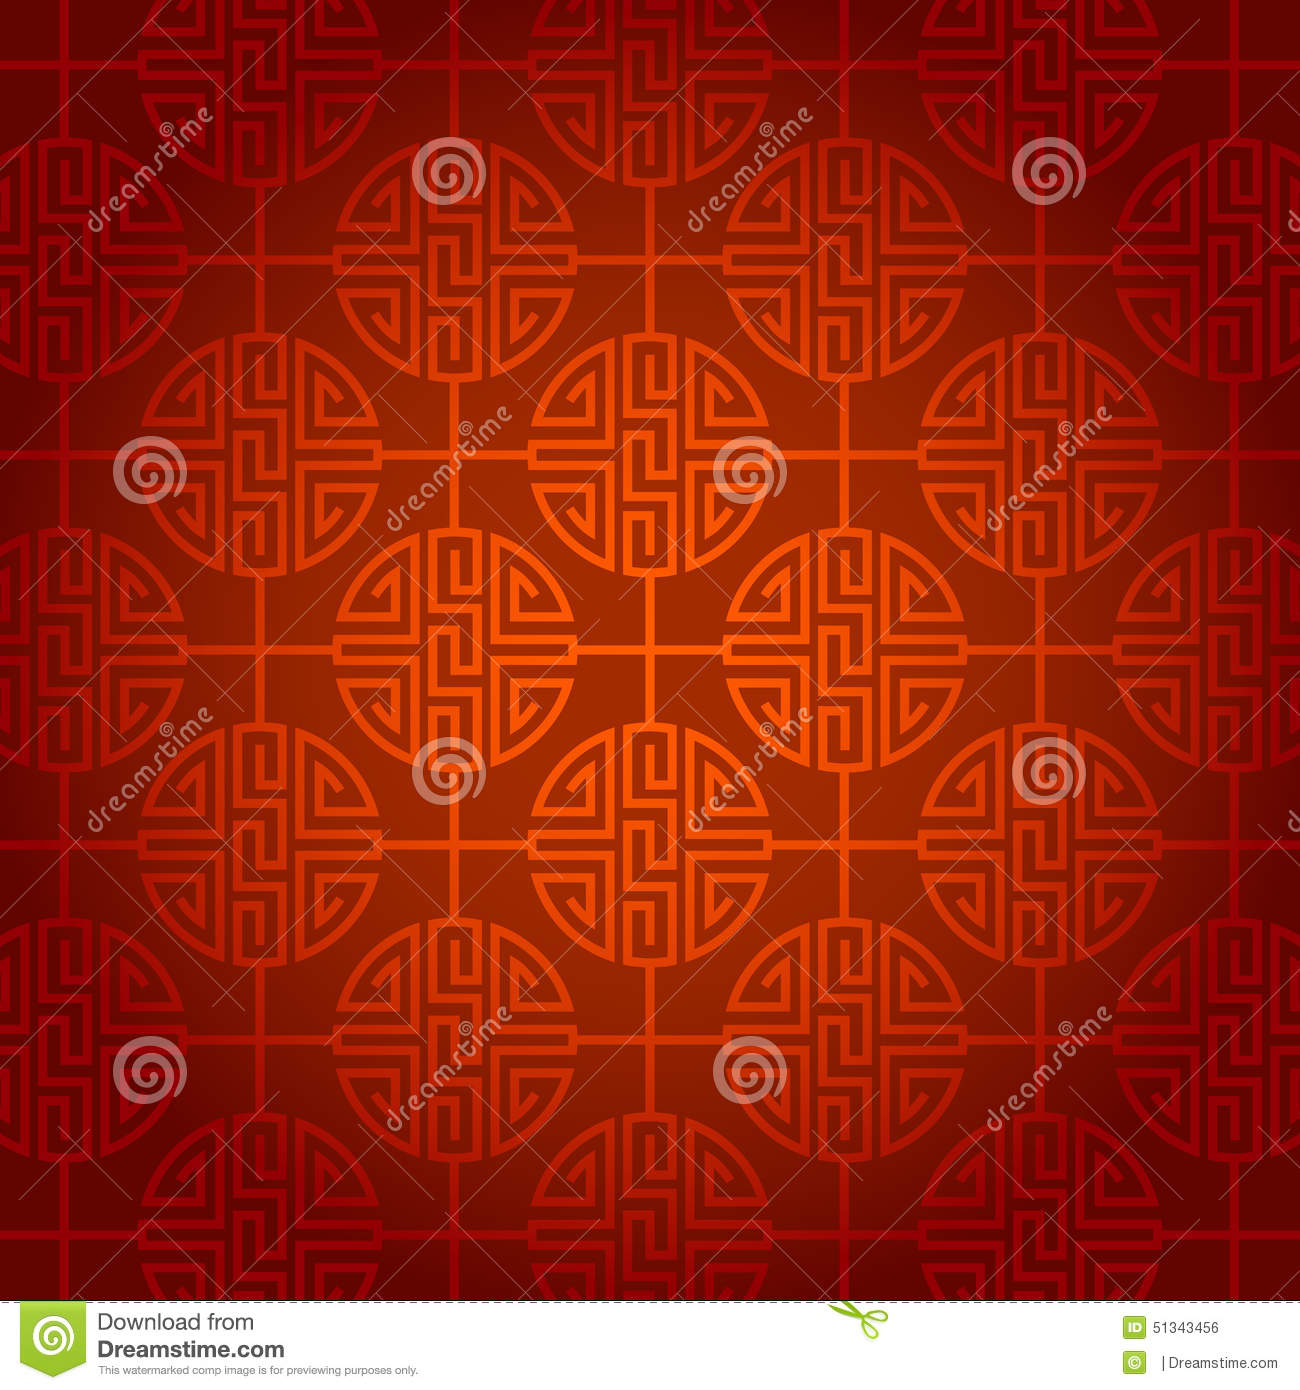 Chinese New Year Wallpaper Background Vector Design Stock Illustration Image 51343456